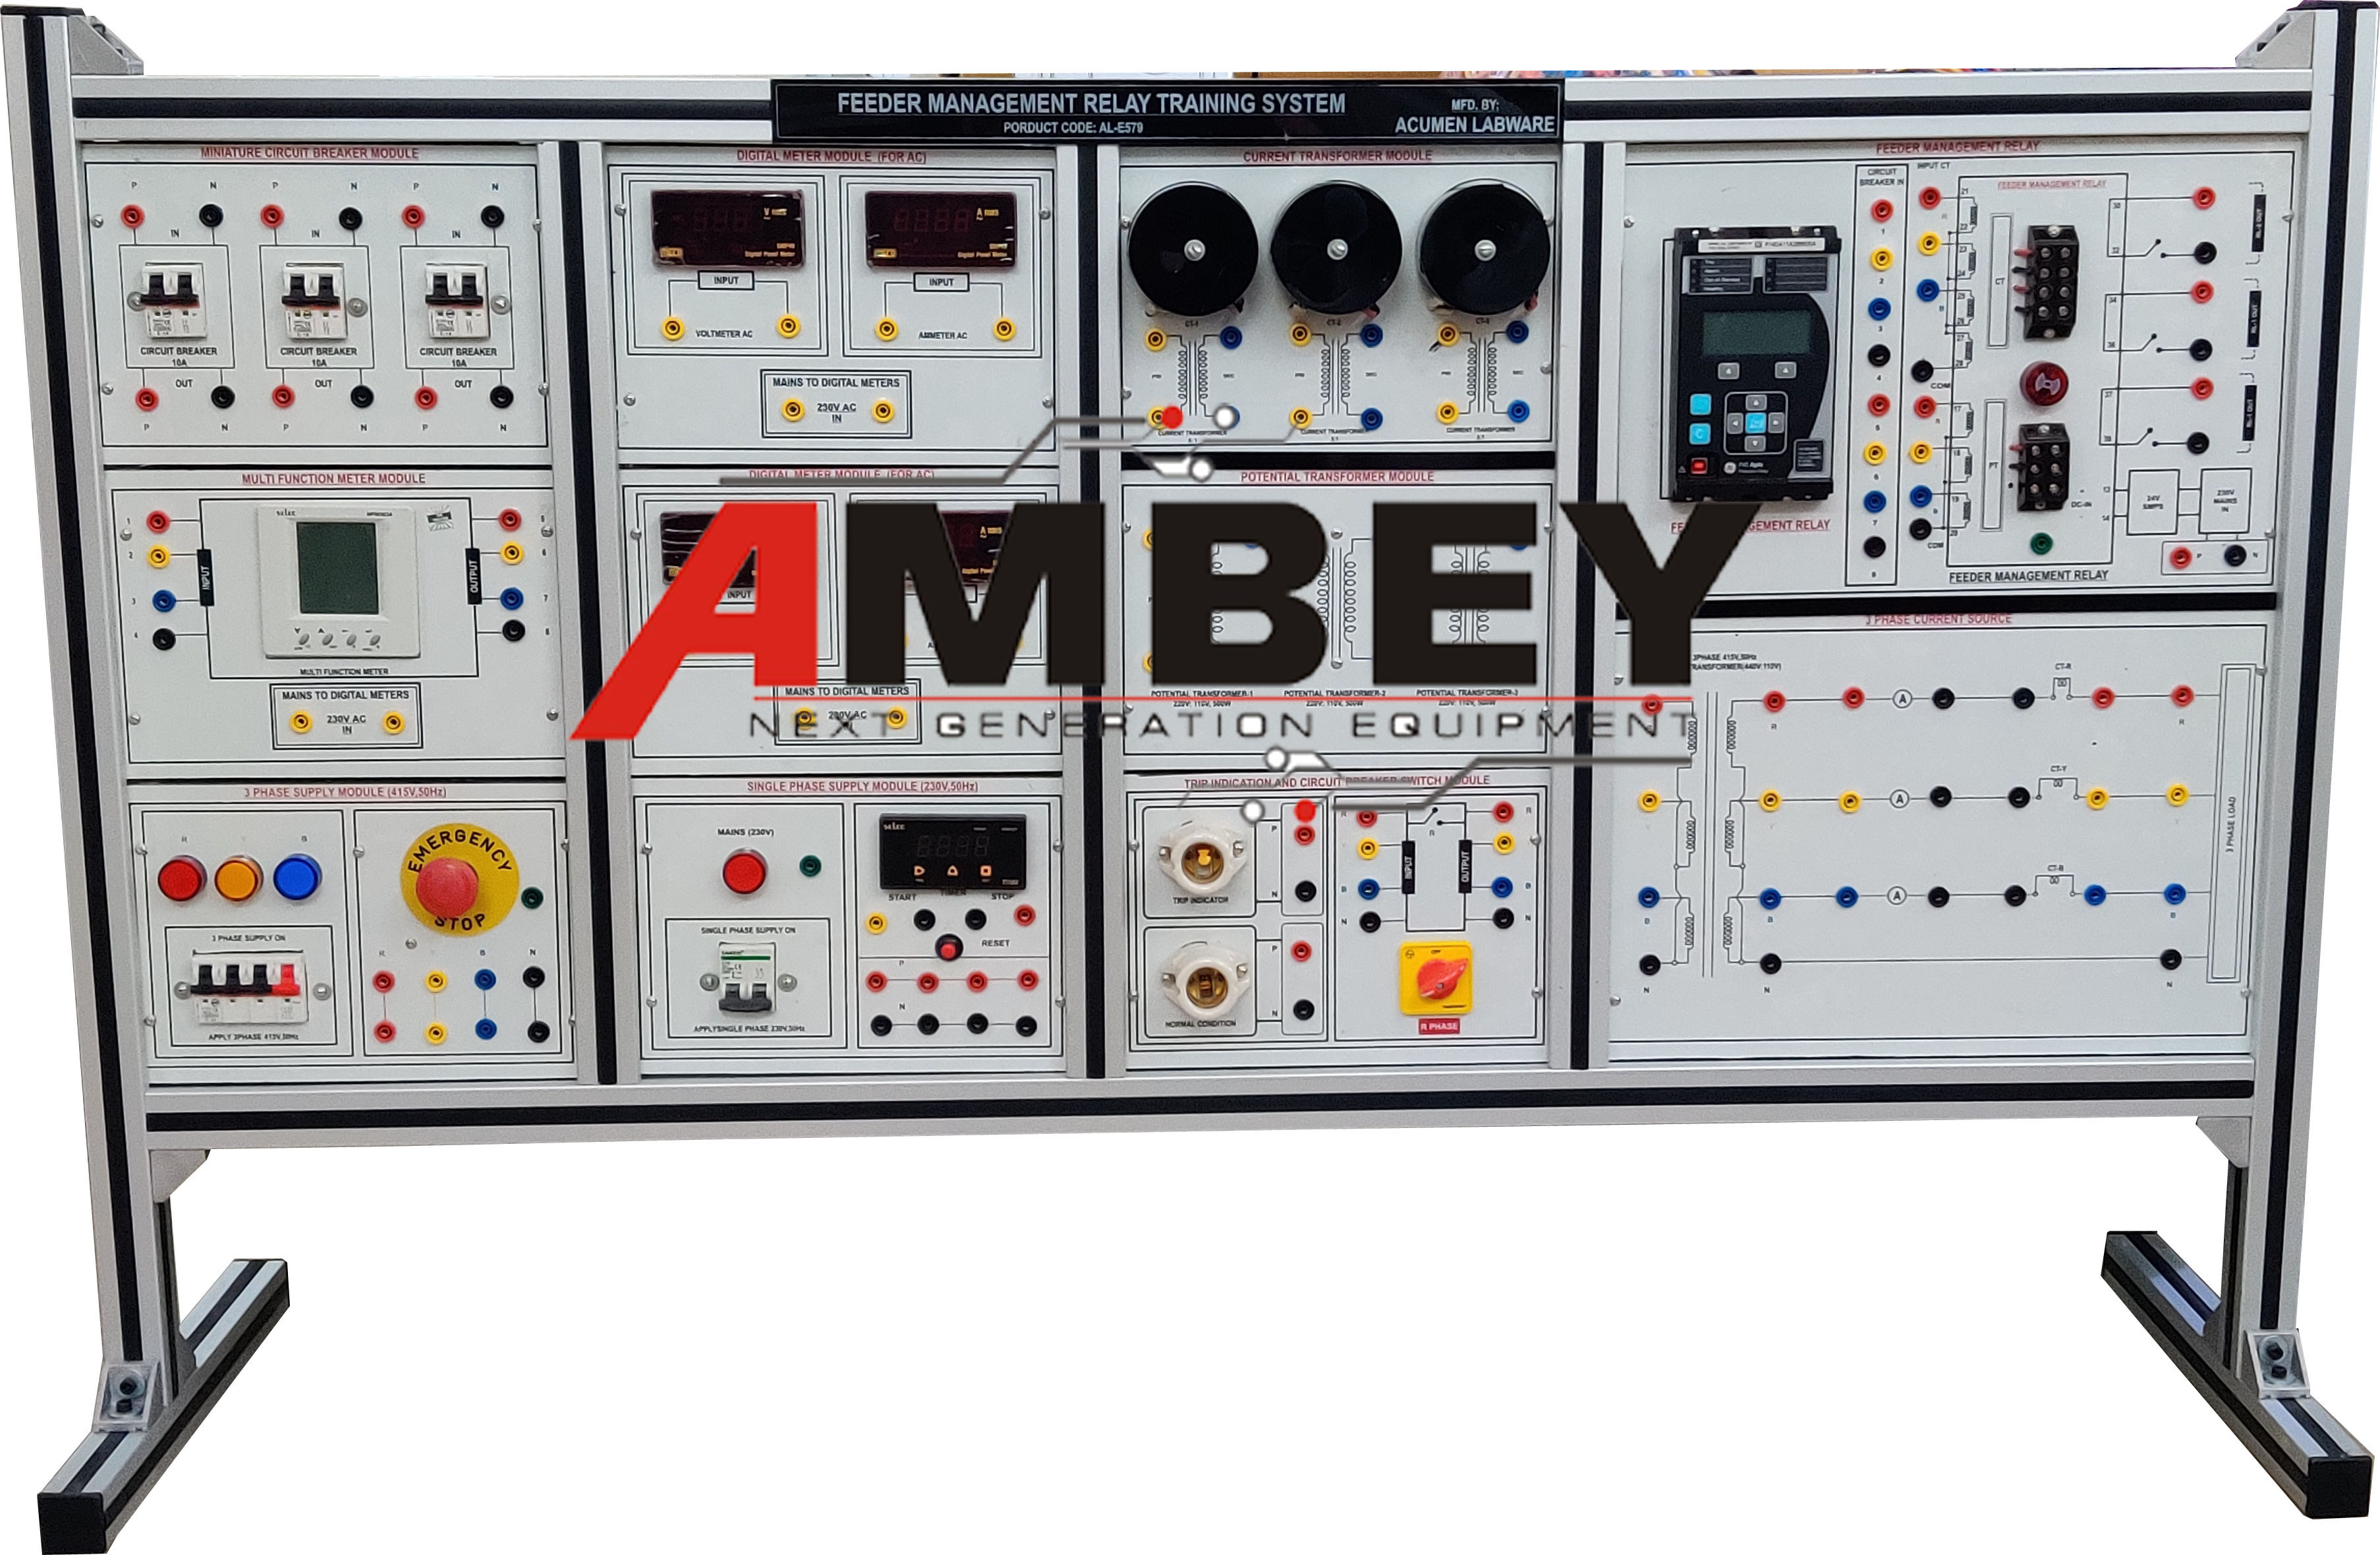 7 FEEDER MANAGEMENT PROTECTION RELAY TRAINING SYSTEM